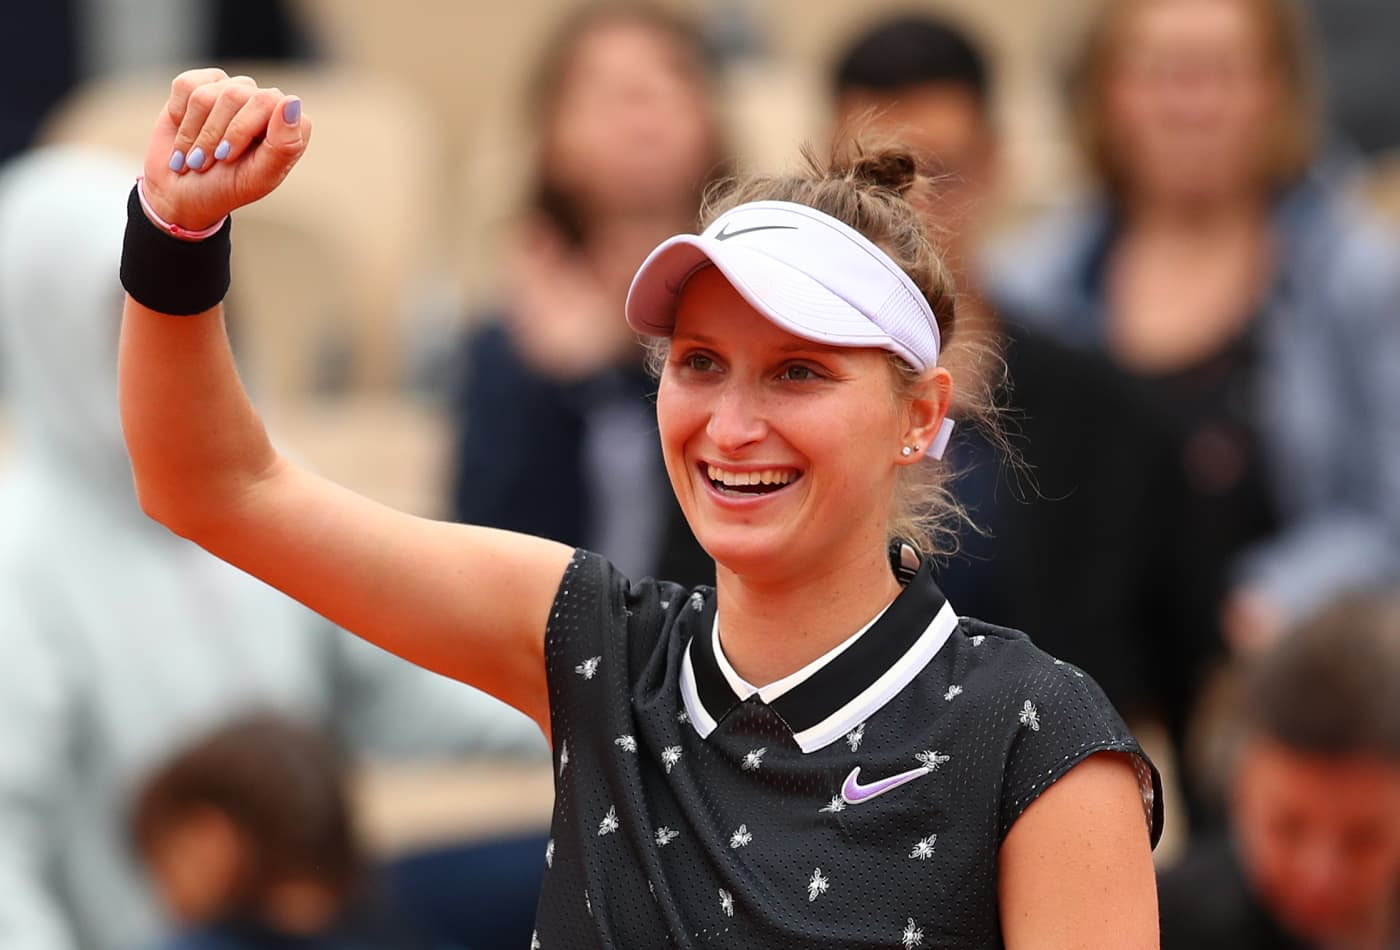 How much money the 2019 French Open women's champion will earn